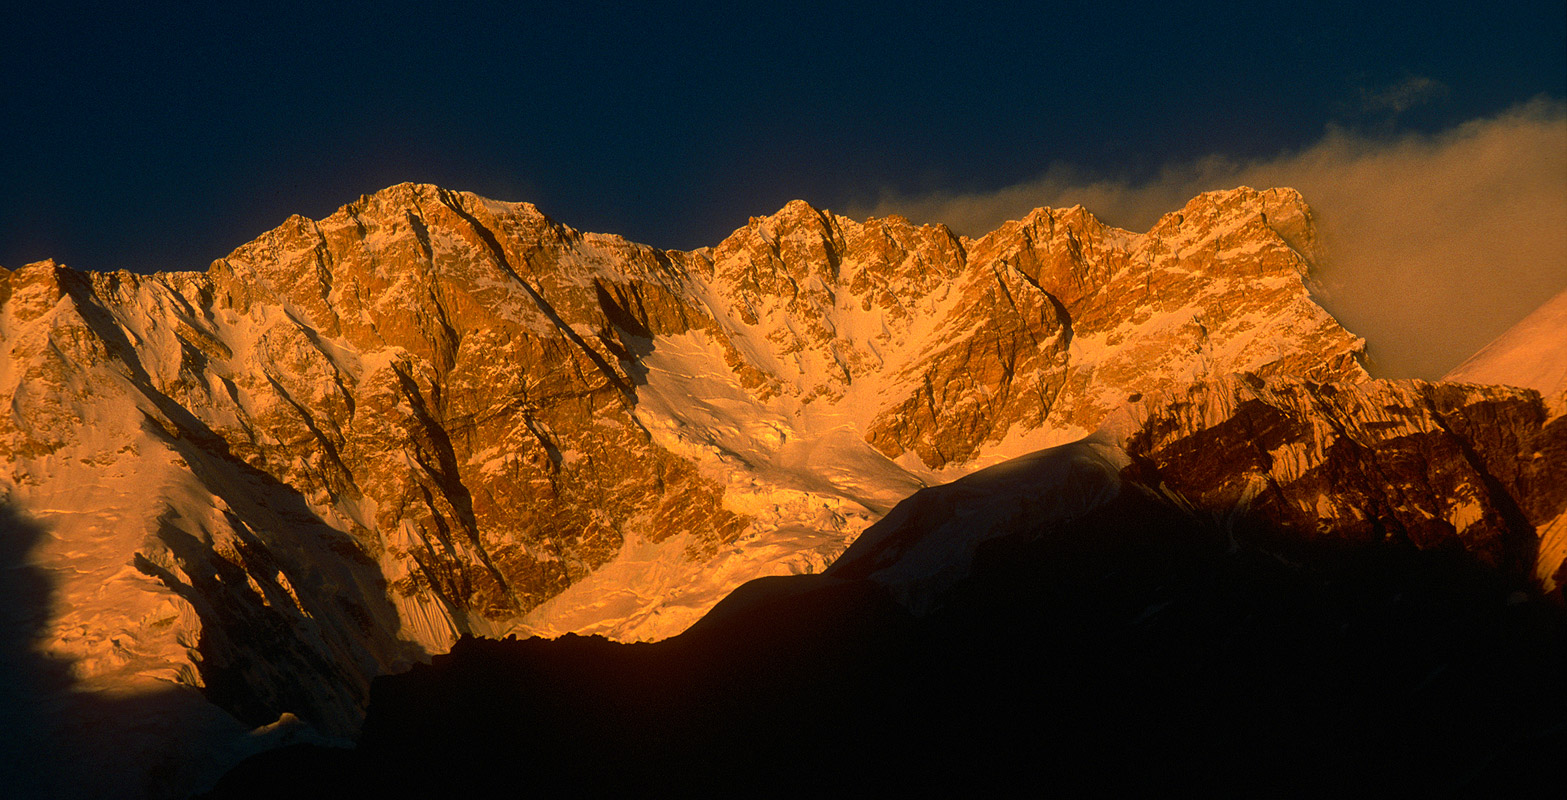 Sunset light illuminating the entire south face of Kangchendzonga, from Oktang on the Yalung glacier.Nikon FM2, 24mm, Fuji Velvia